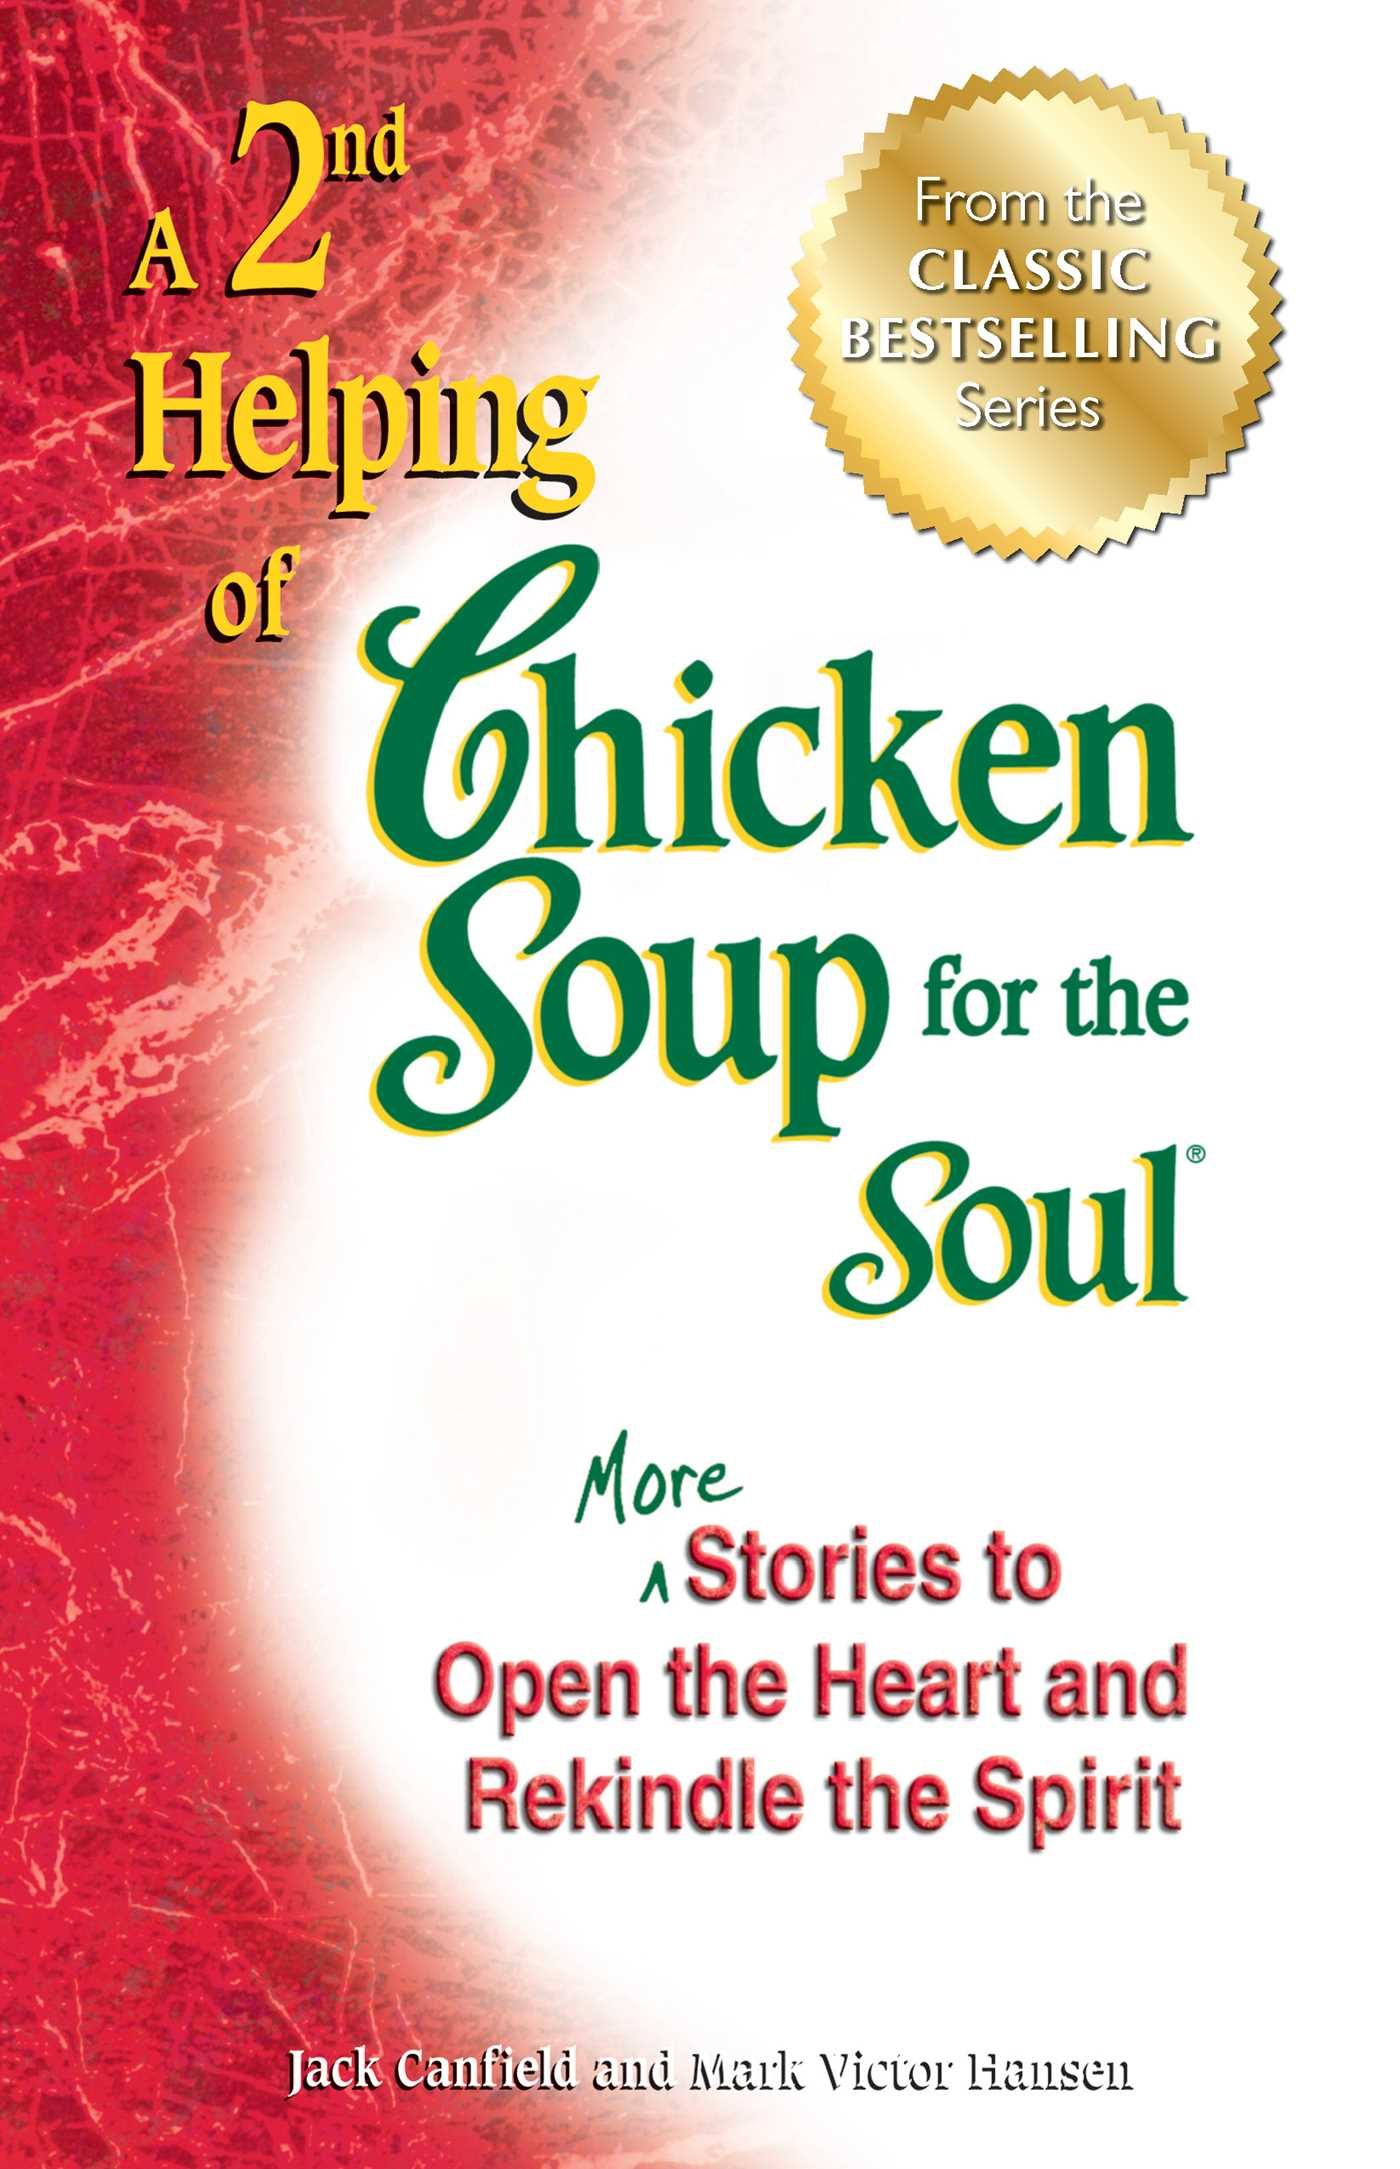 2nd-helping-of-chicken-soup-for-the-soul-9781623610357_hr